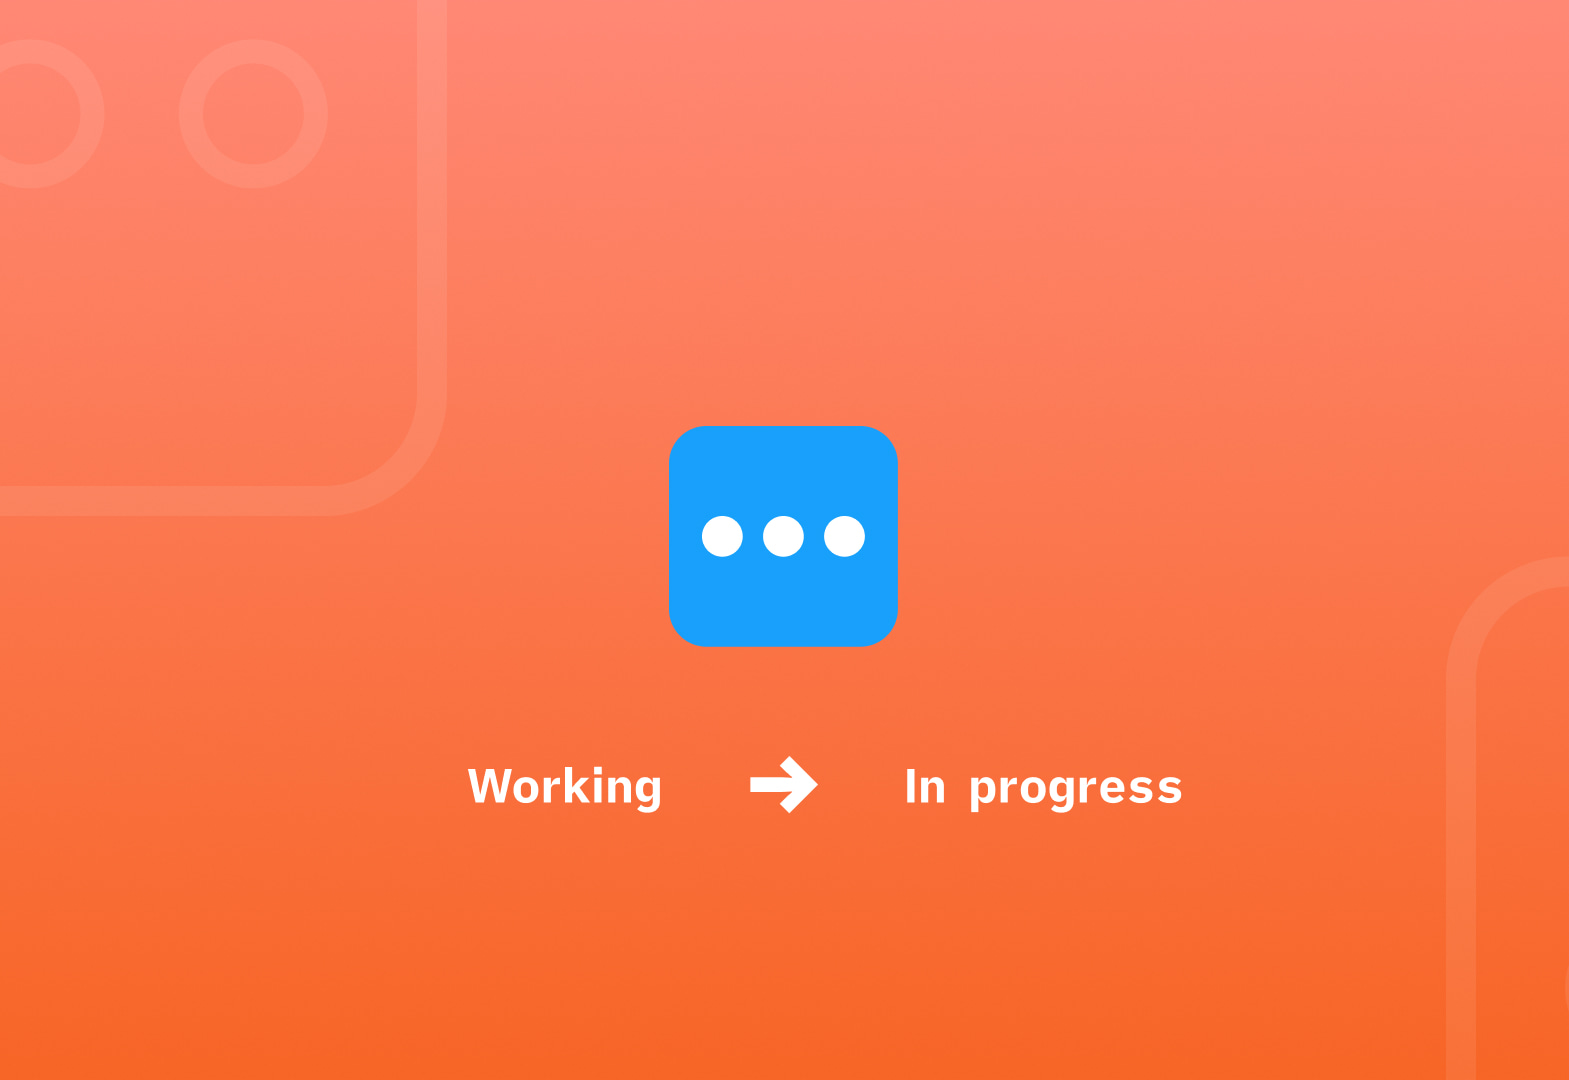 changing the title of the icon for 'working' to 'in progress'